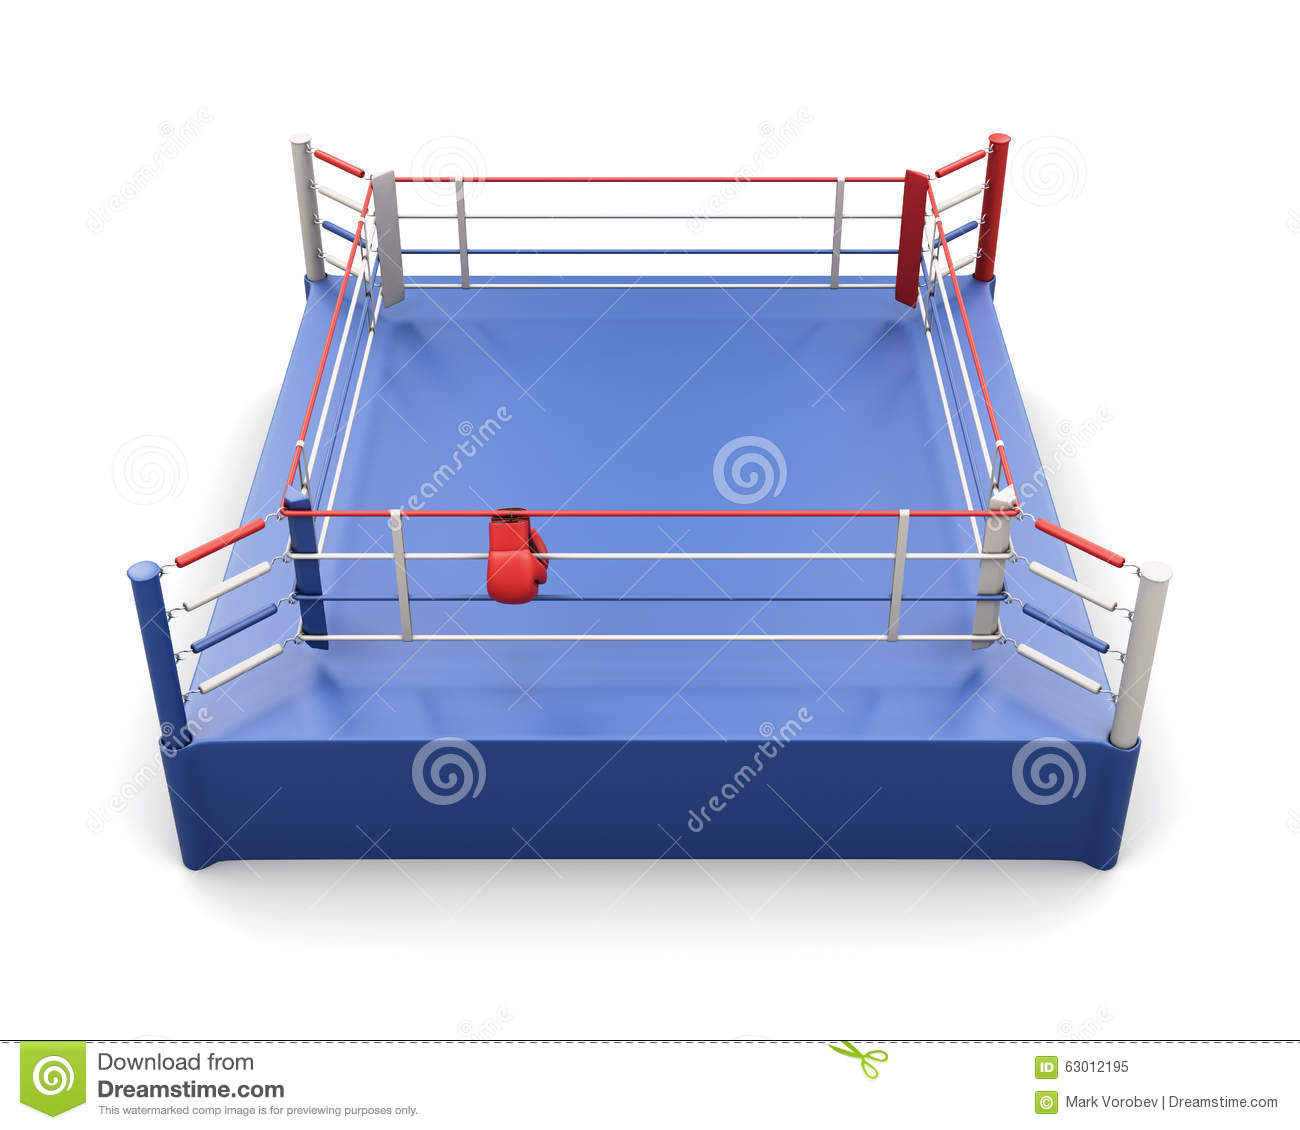 Boxing ring and gloves on the ropes 3d illustration stock download boxing ring and gloves on the ropes 3d illustration stock illustration illustration ccuart Images